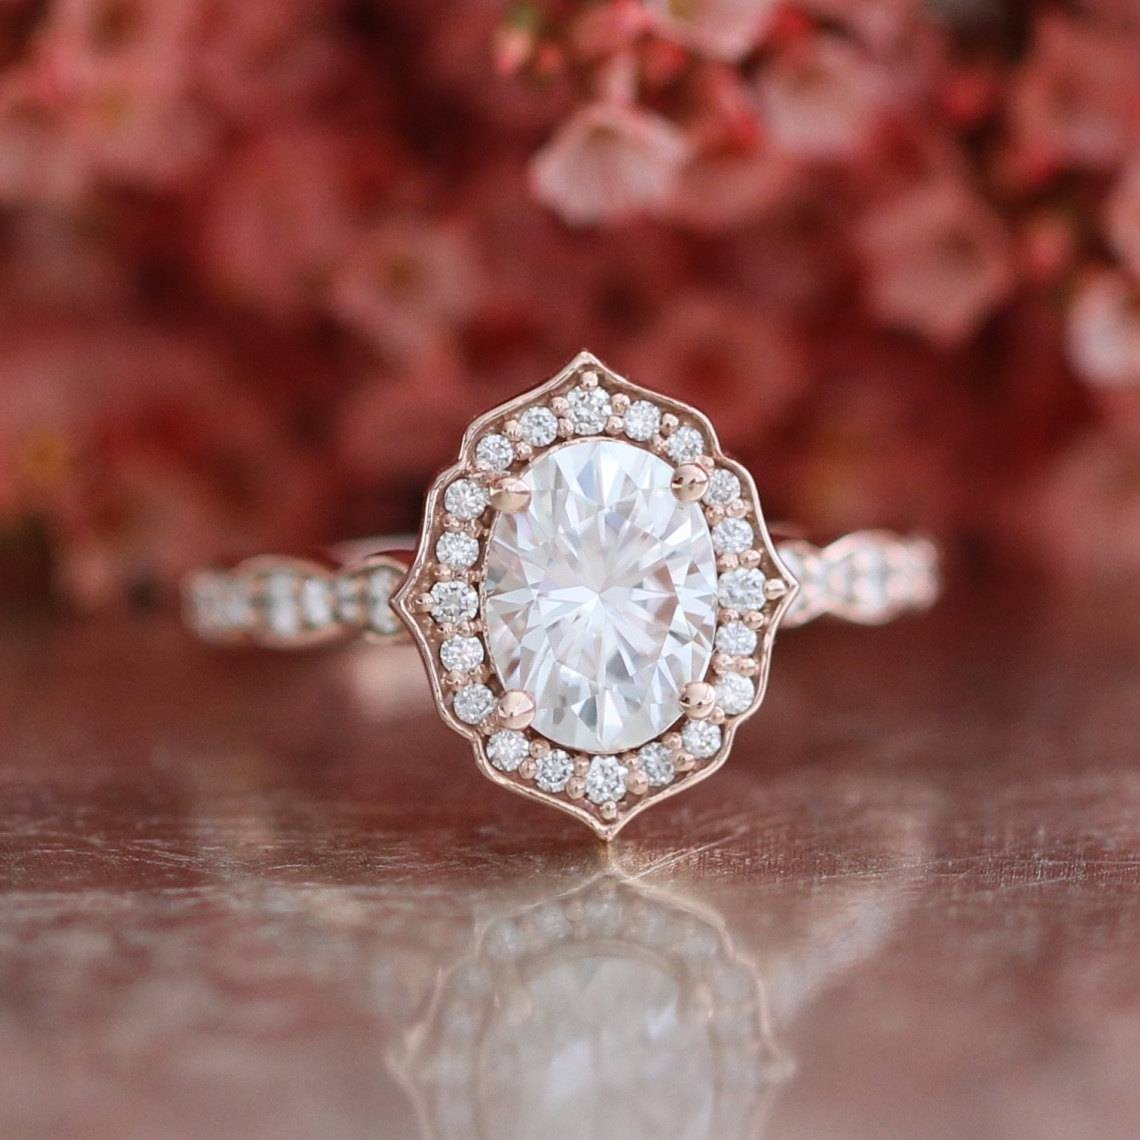 Oval Cut Forever One Moissanite Vintage Floral Engagement Ring Within Etsy Vintage Wedding Bands (Gallery 15 of 15)